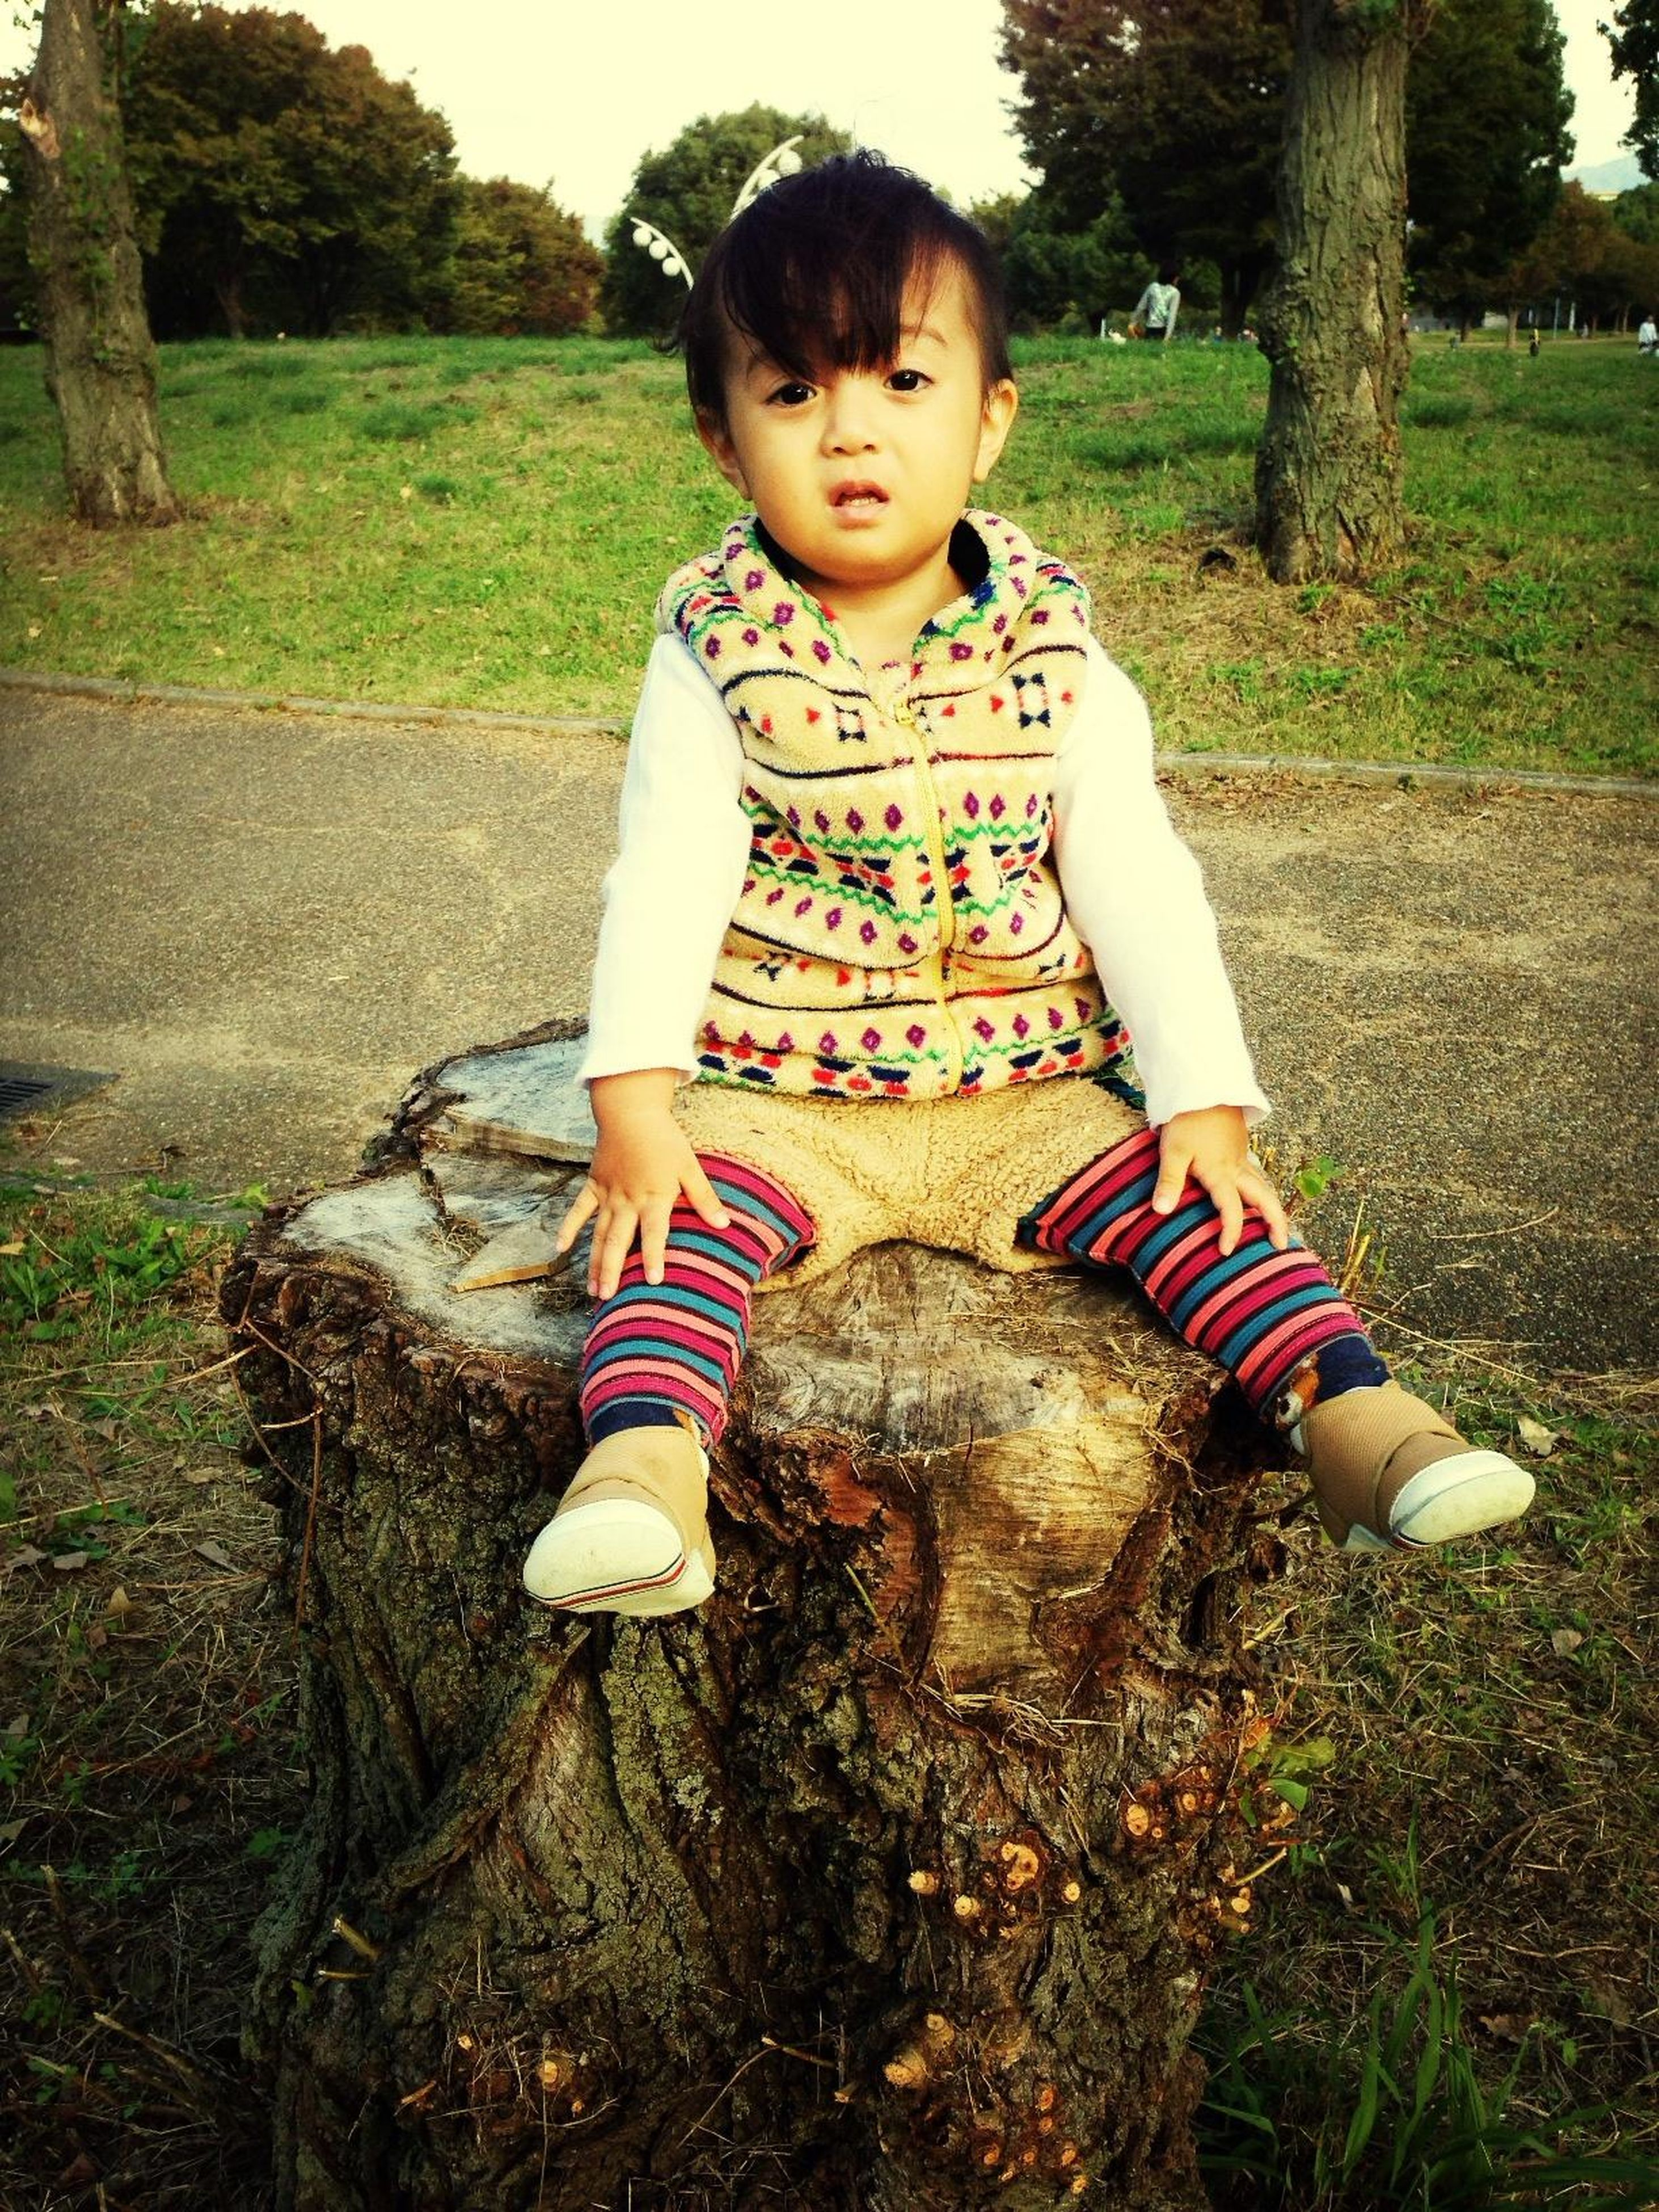 person, childhood, casual clothing, lifestyles, leisure activity, elementary age, full length, front view, looking at camera, girls, happiness, portrait, grass, smiling, standing, cute, innocence, tree